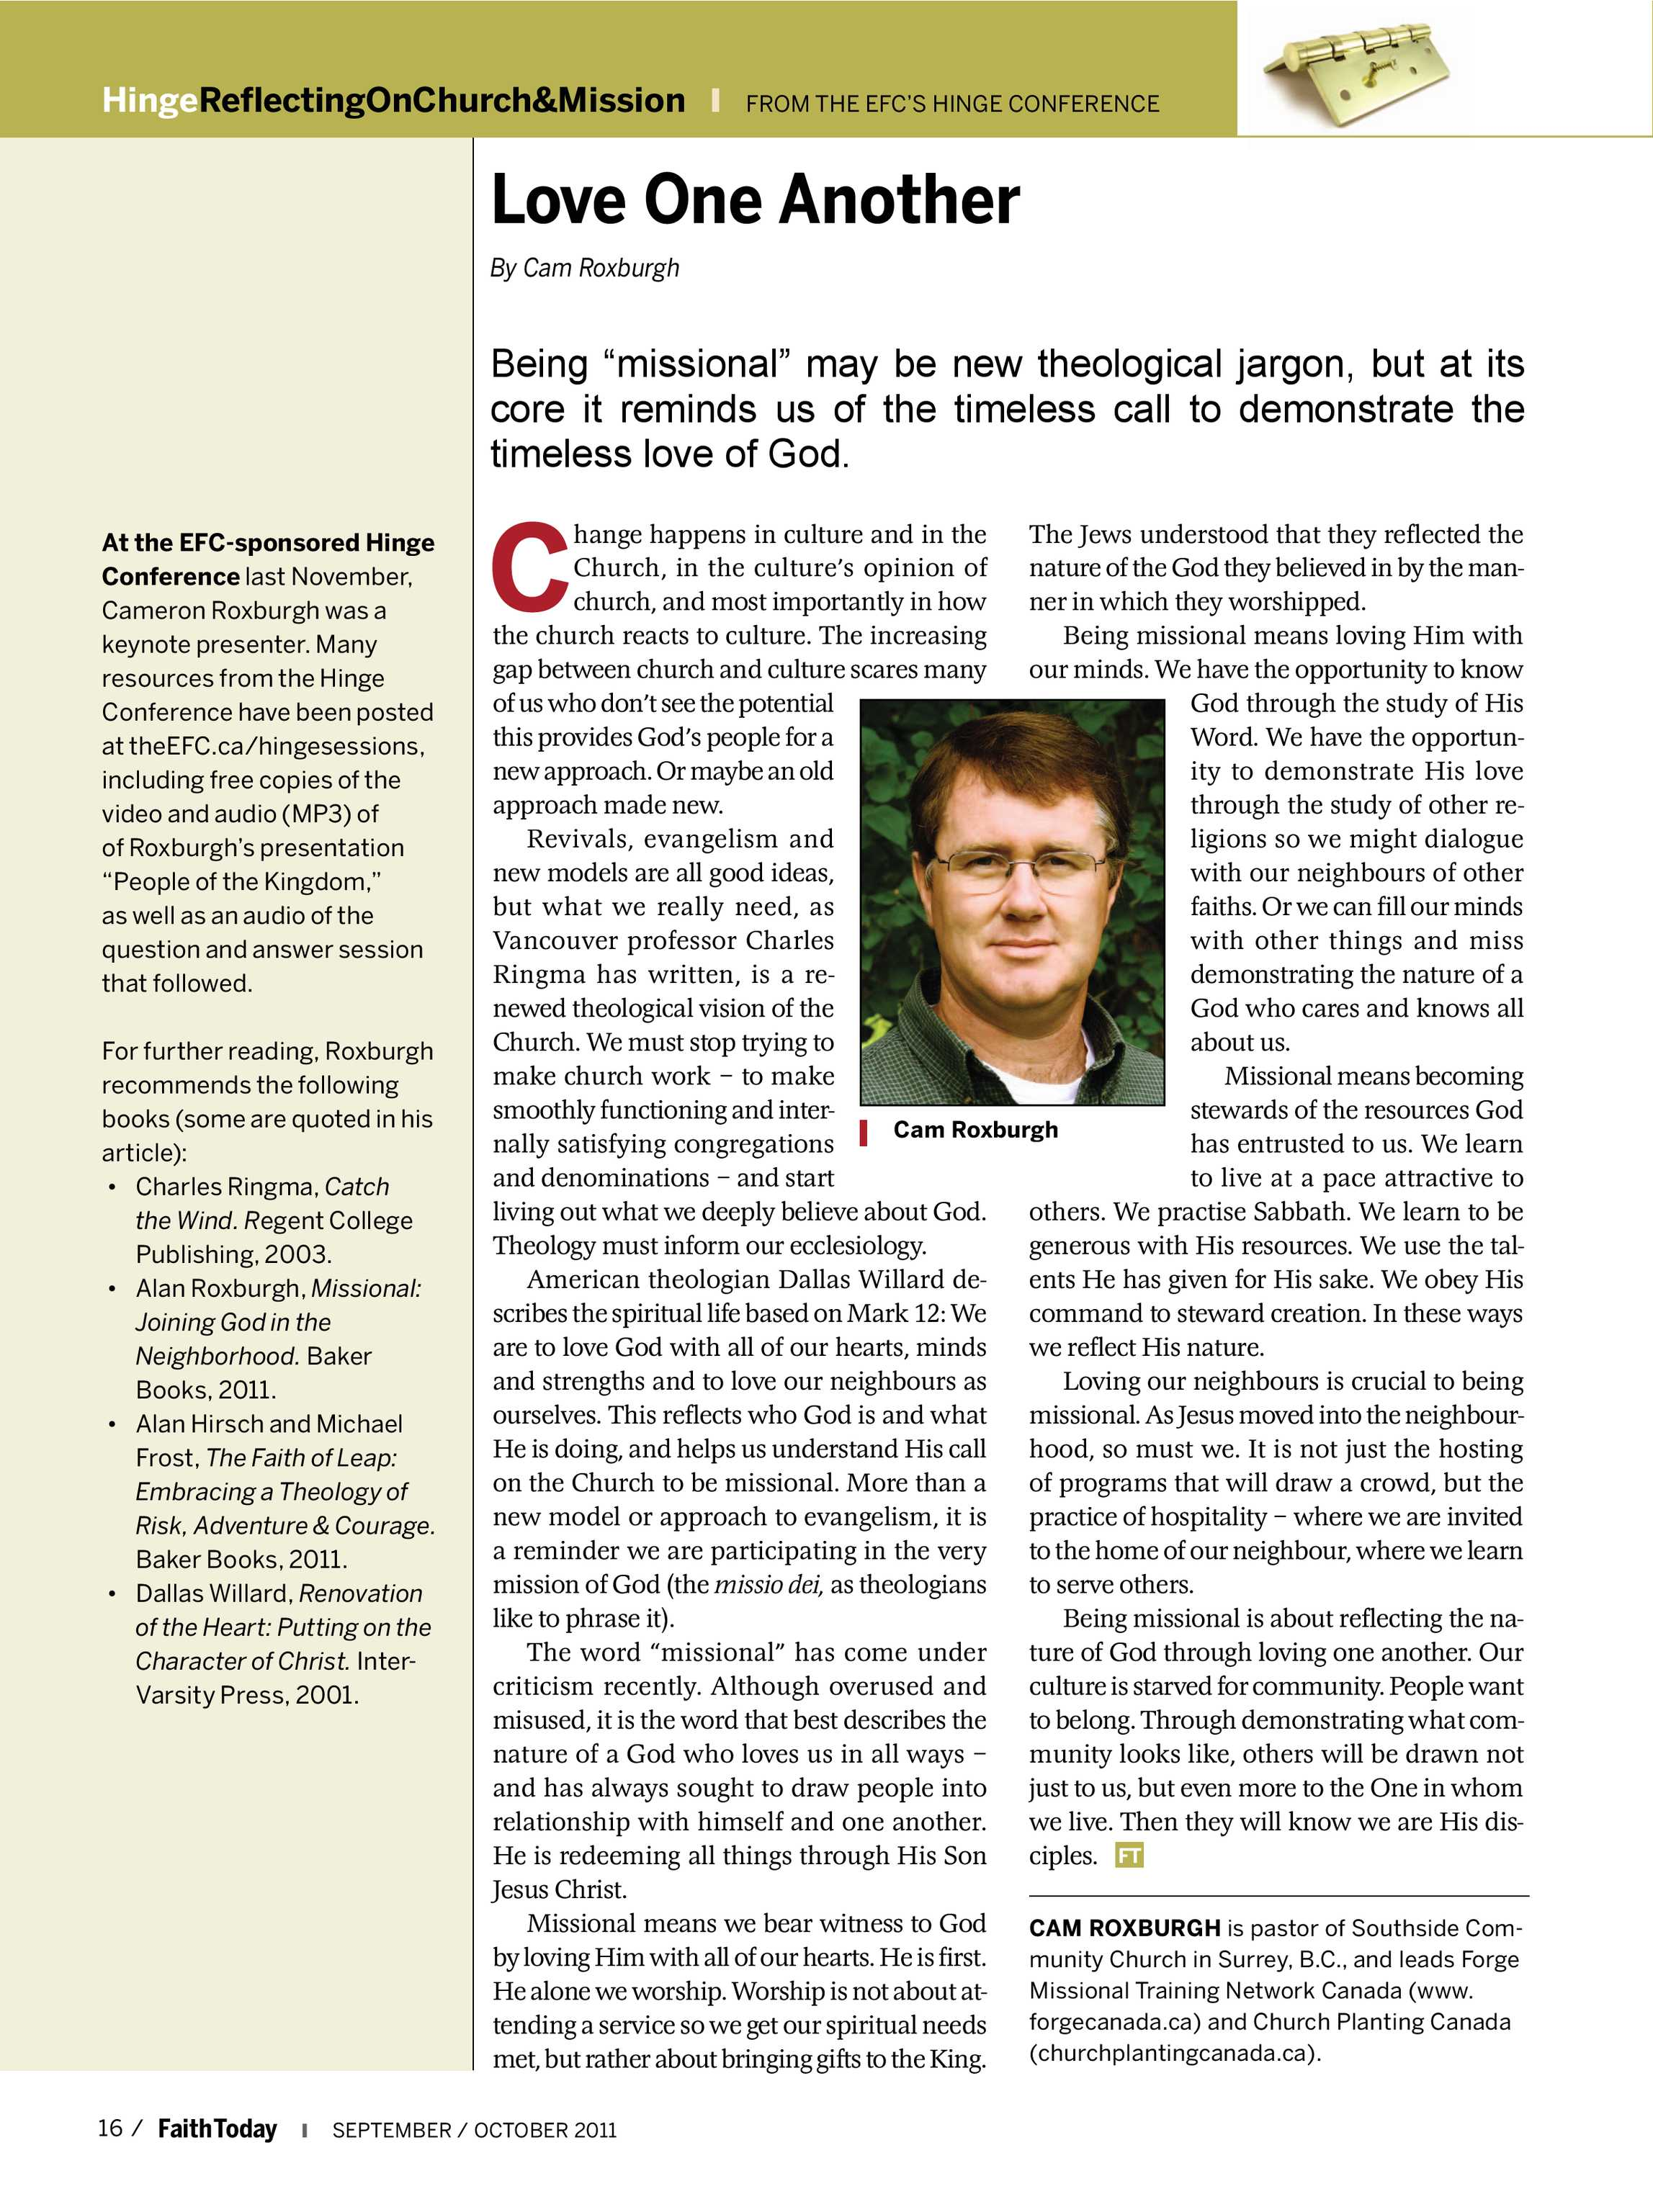 Faith Today - September/October 2011 - page 16